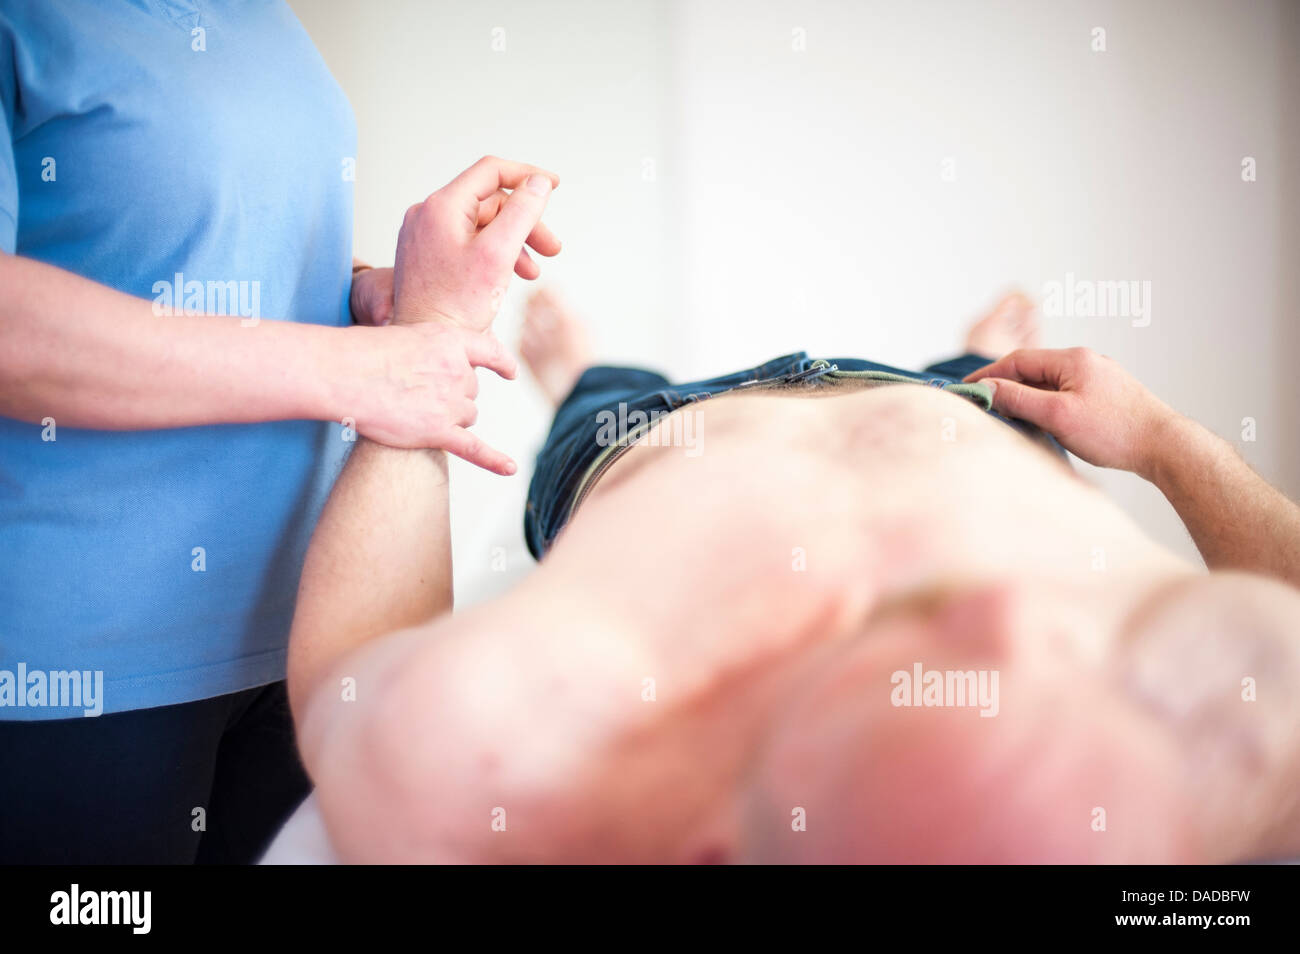 Woman checking man's pulse - Stock Image